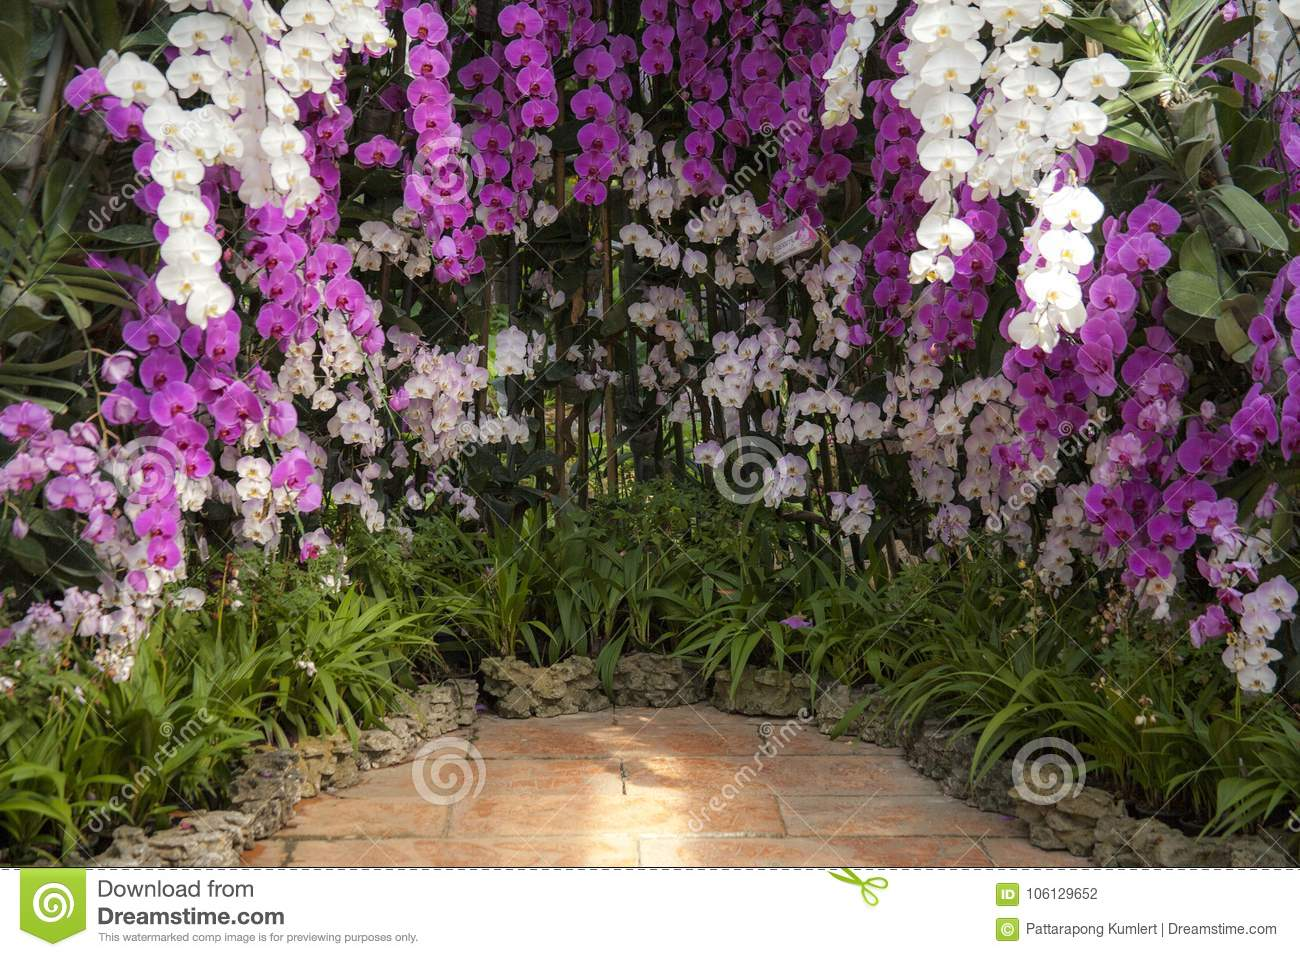 Tropical Orchid Garden Landscaping With Tropical Plants Stock Photo Image Of Park Rainforest 106129652